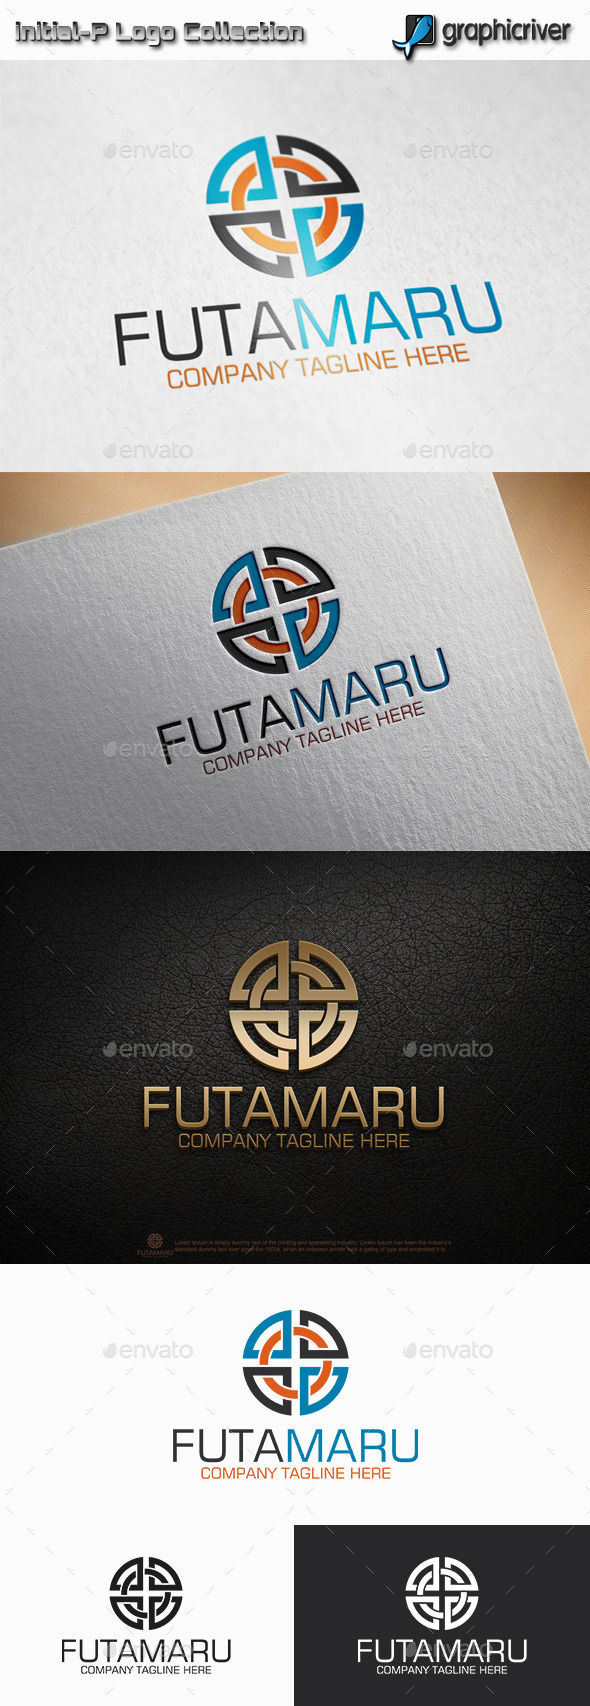 GraphicRiver Futa Maru Double Circle Logo 11514672